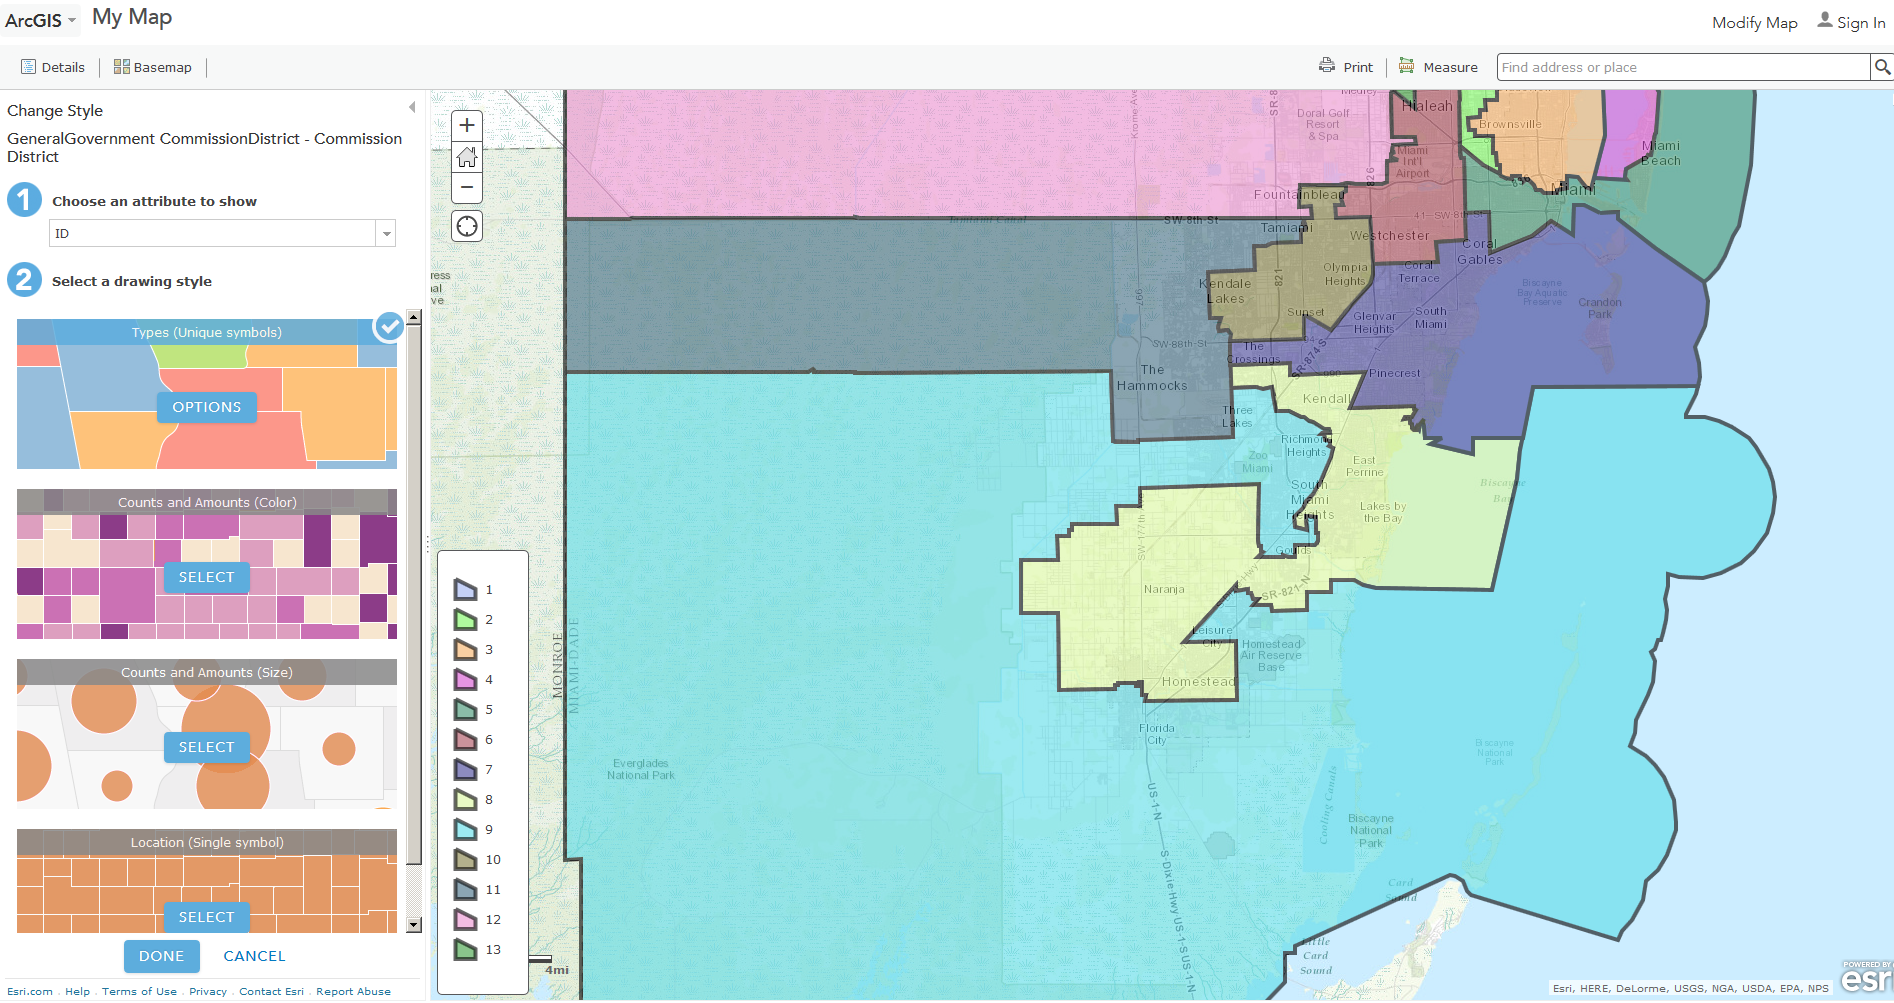 Research MiamiDade County GIS Data Resources FIU Libraries - Us zip code gis shapefile